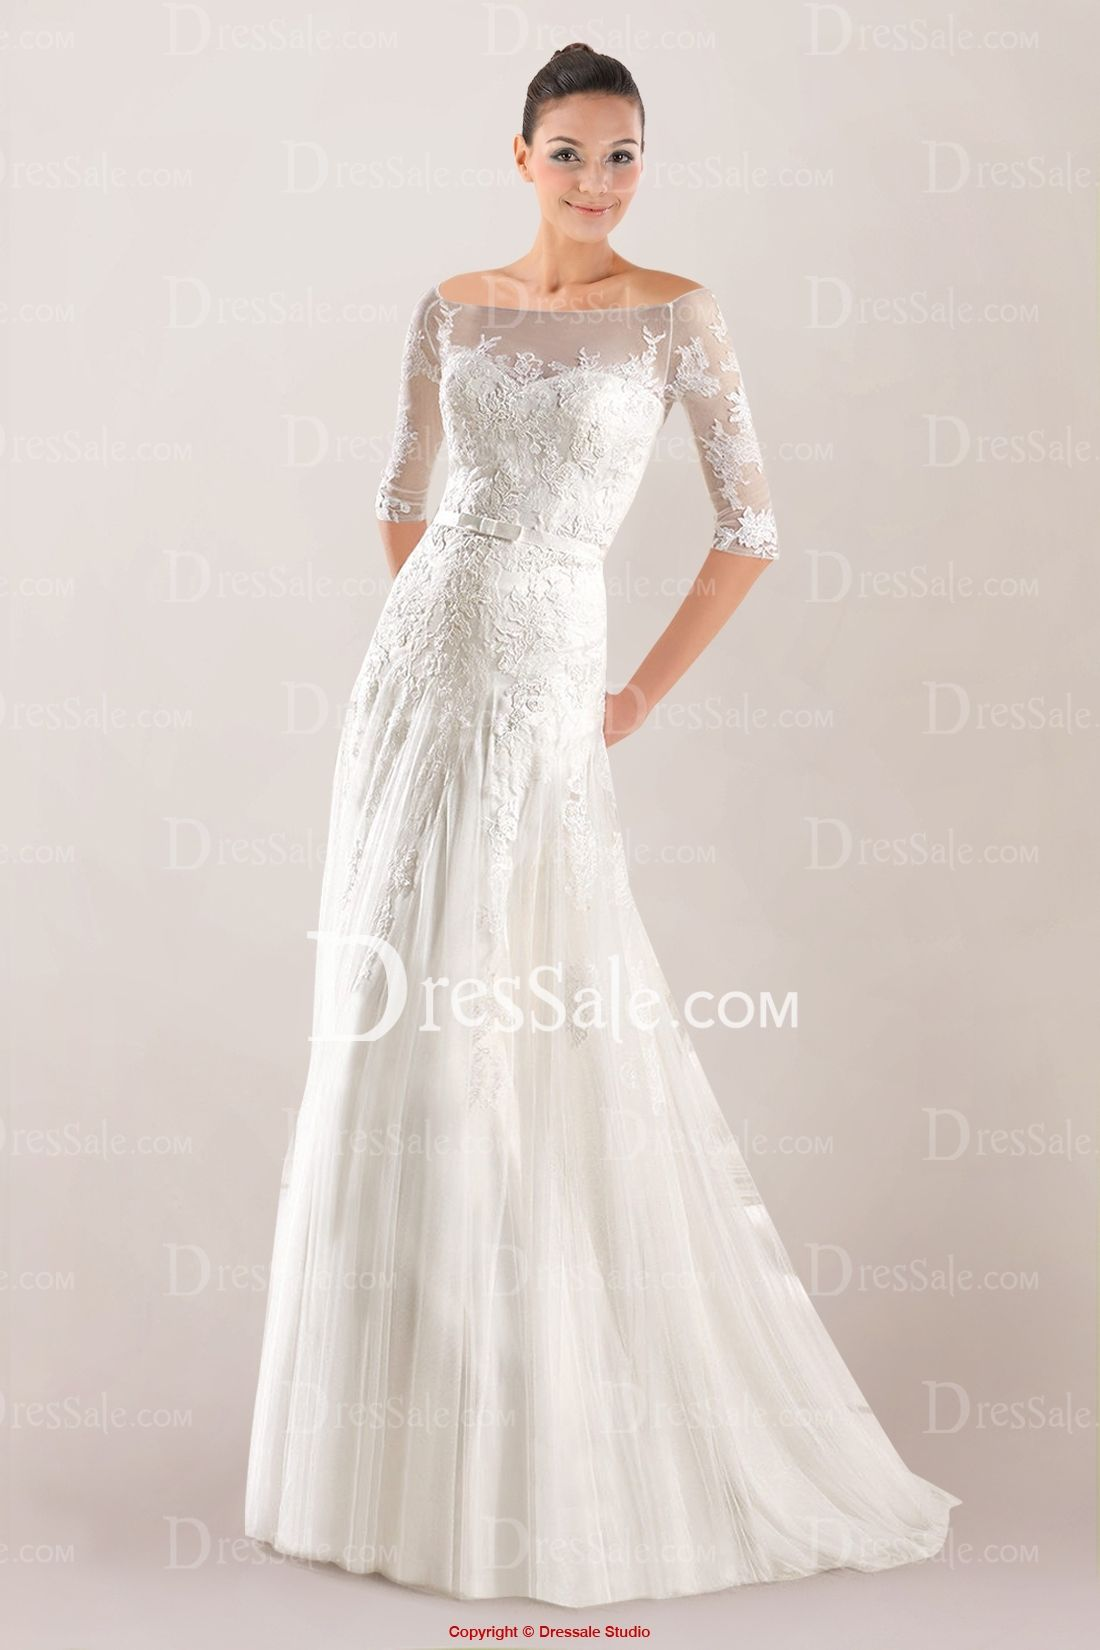 Ethereal Off-the-shoulder Tulle Wedding Dress Highlighted with Lace ...